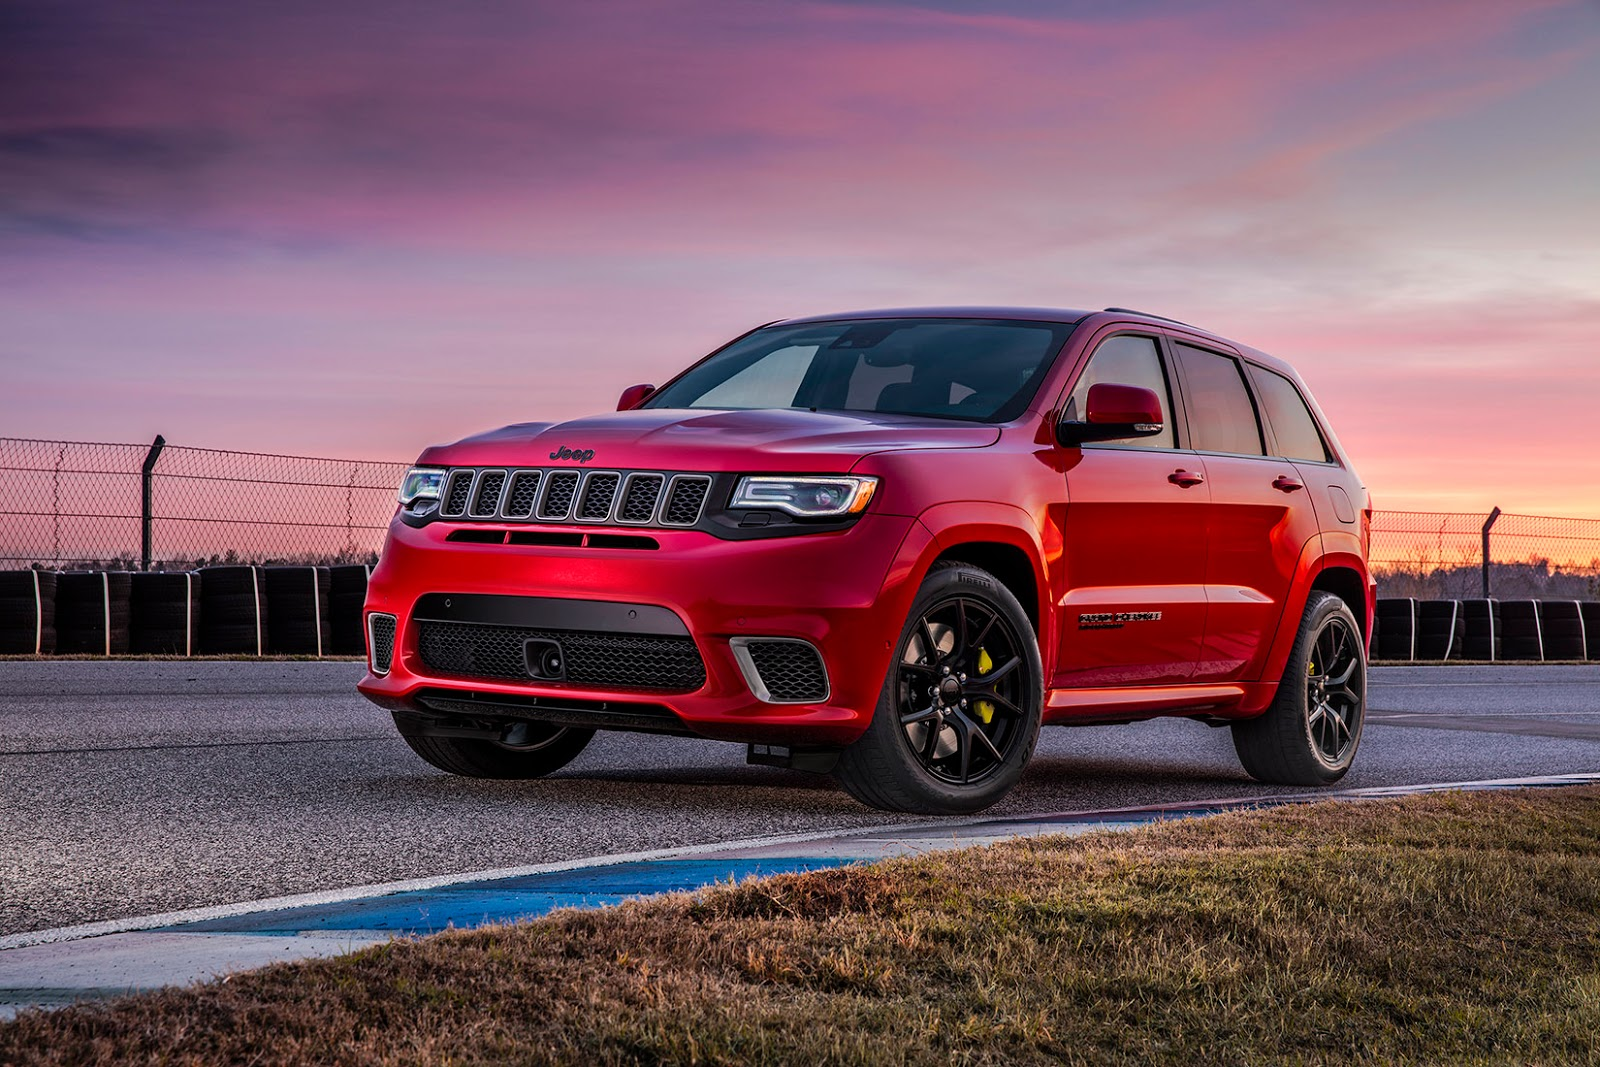 2018 jeep grand cherokee trackhawk srt hellcat forum. Black Bedroom Furniture Sets. Home Design Ideas